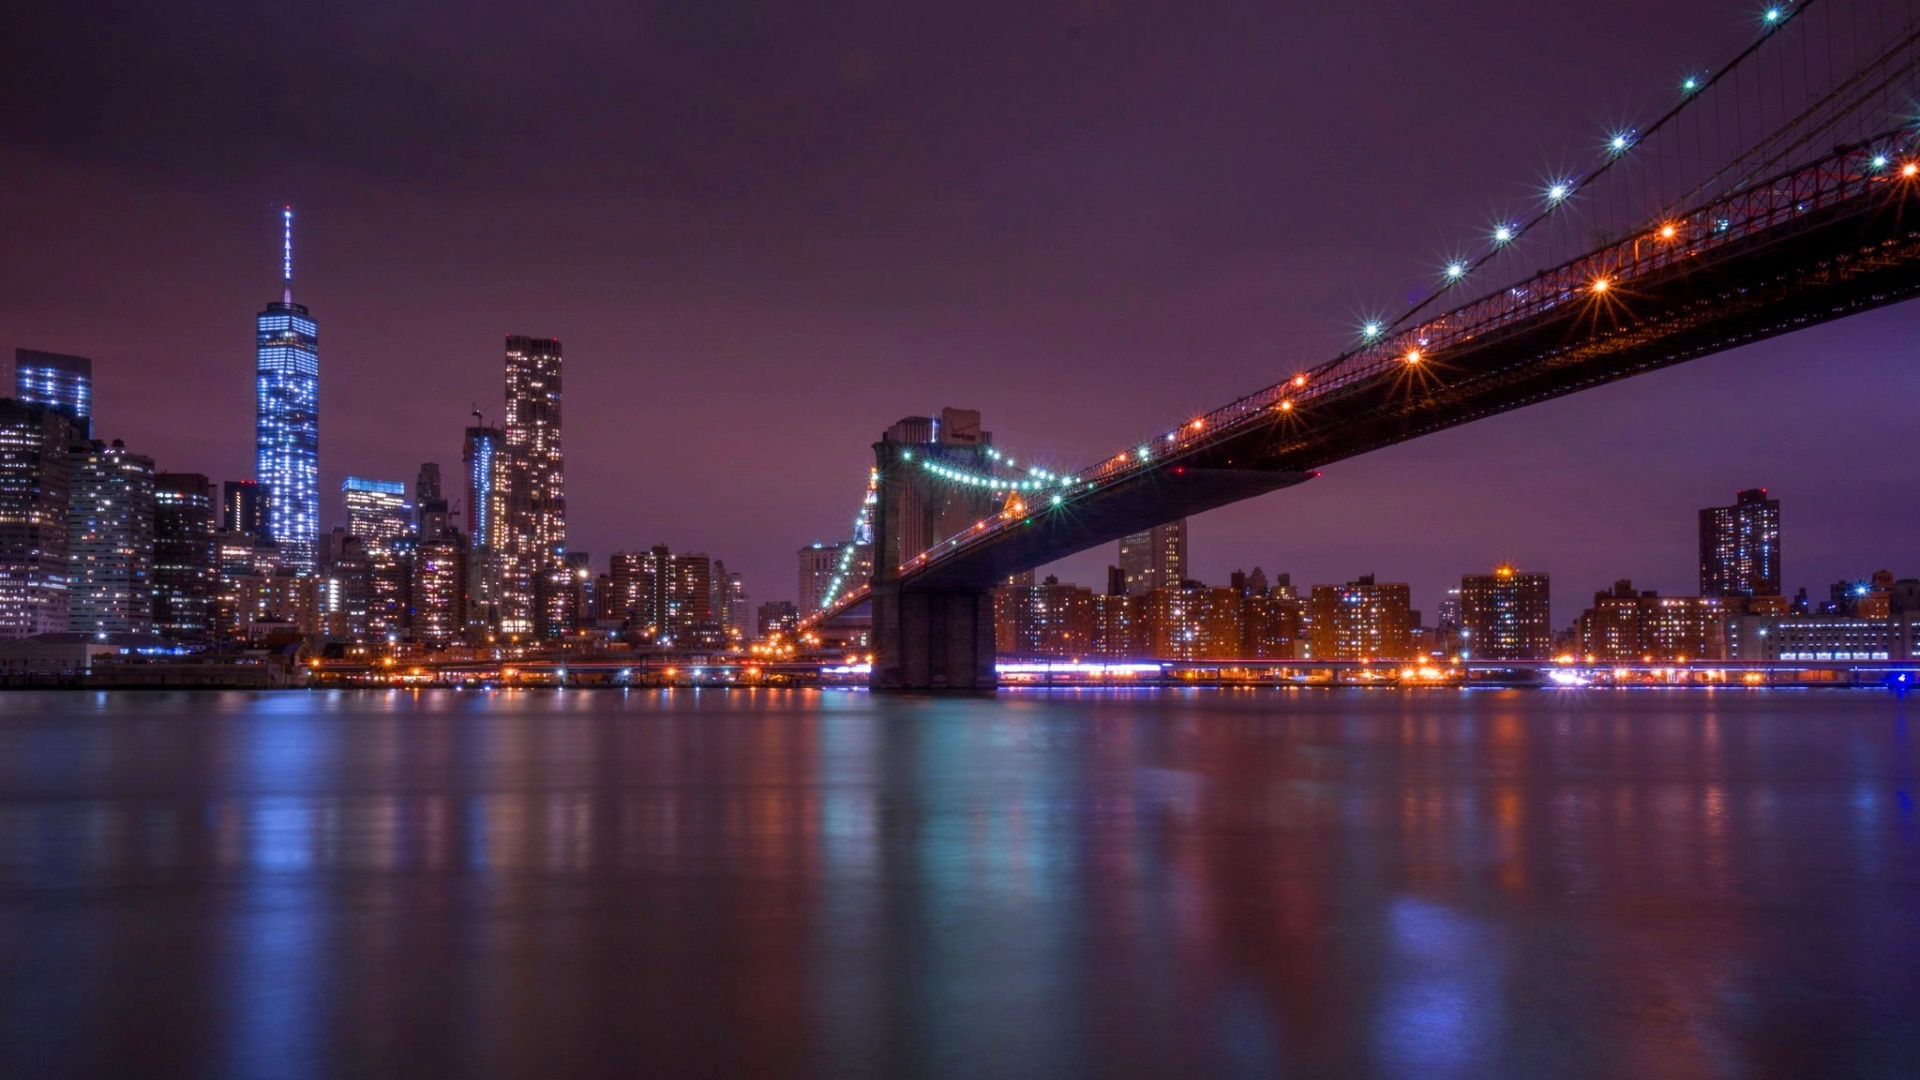 Free Download Brooklyn Bridge Hd Wallpaper For Download 42 1920x1080 For Your Desktop Mobile Tablet Explore 68 Brooklyn Bridge Wallpaper Bridge Wallpapers Bridge Wallpaper Widescreen Brooklyn Bridge Wallpaper Mural